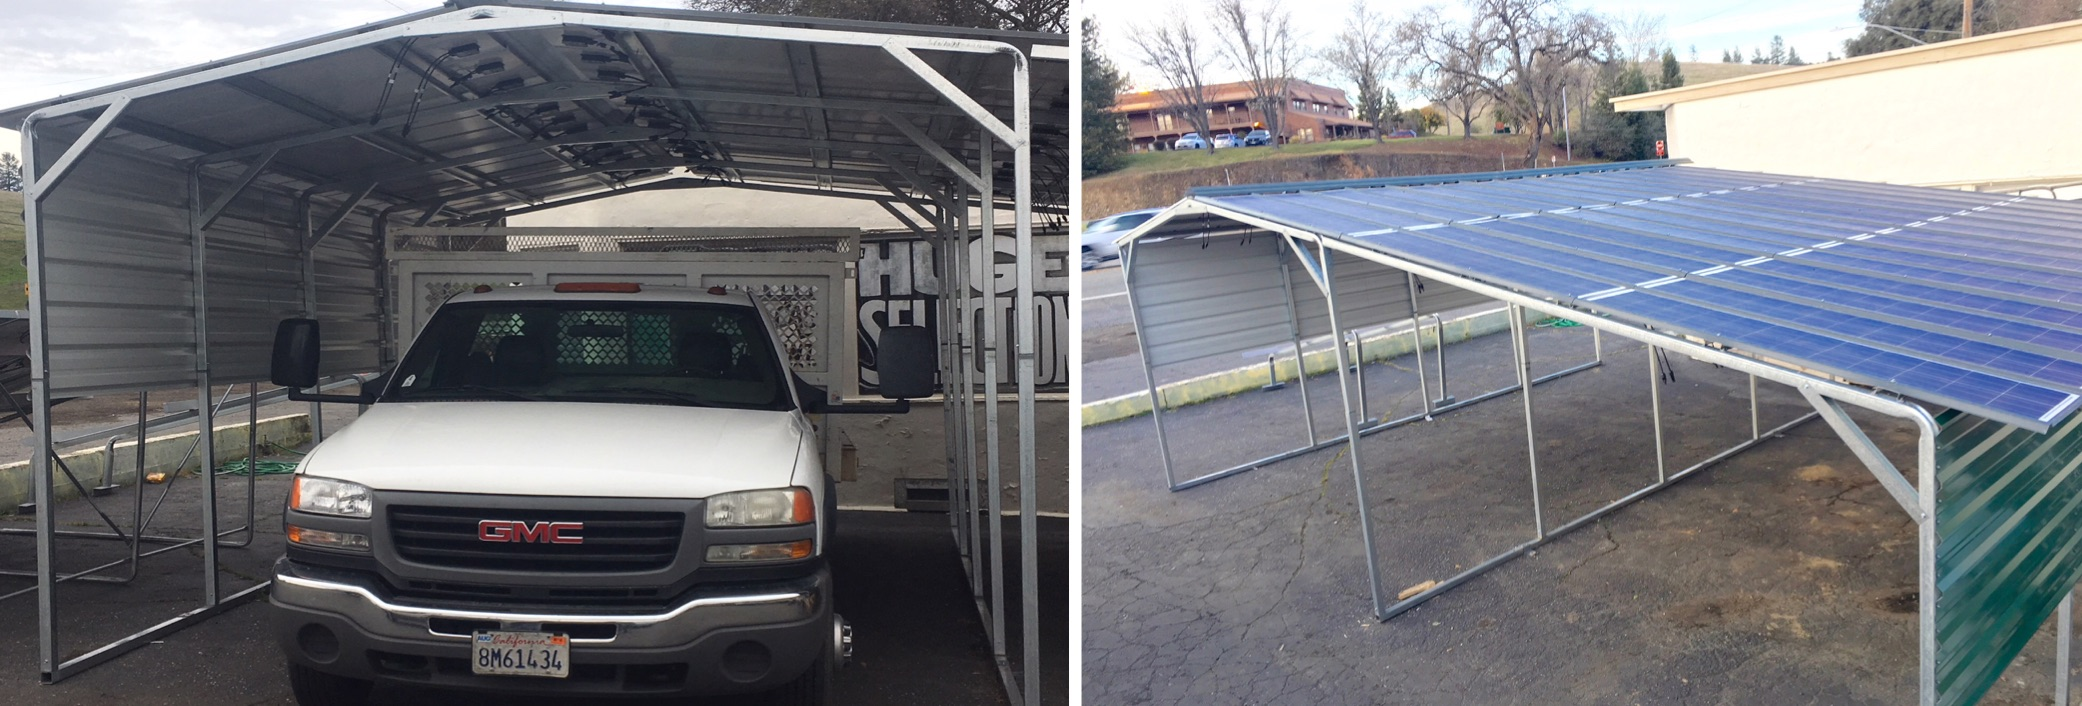 Home Solar Carport System : Sunnycal solar provides carport for homes and businesses